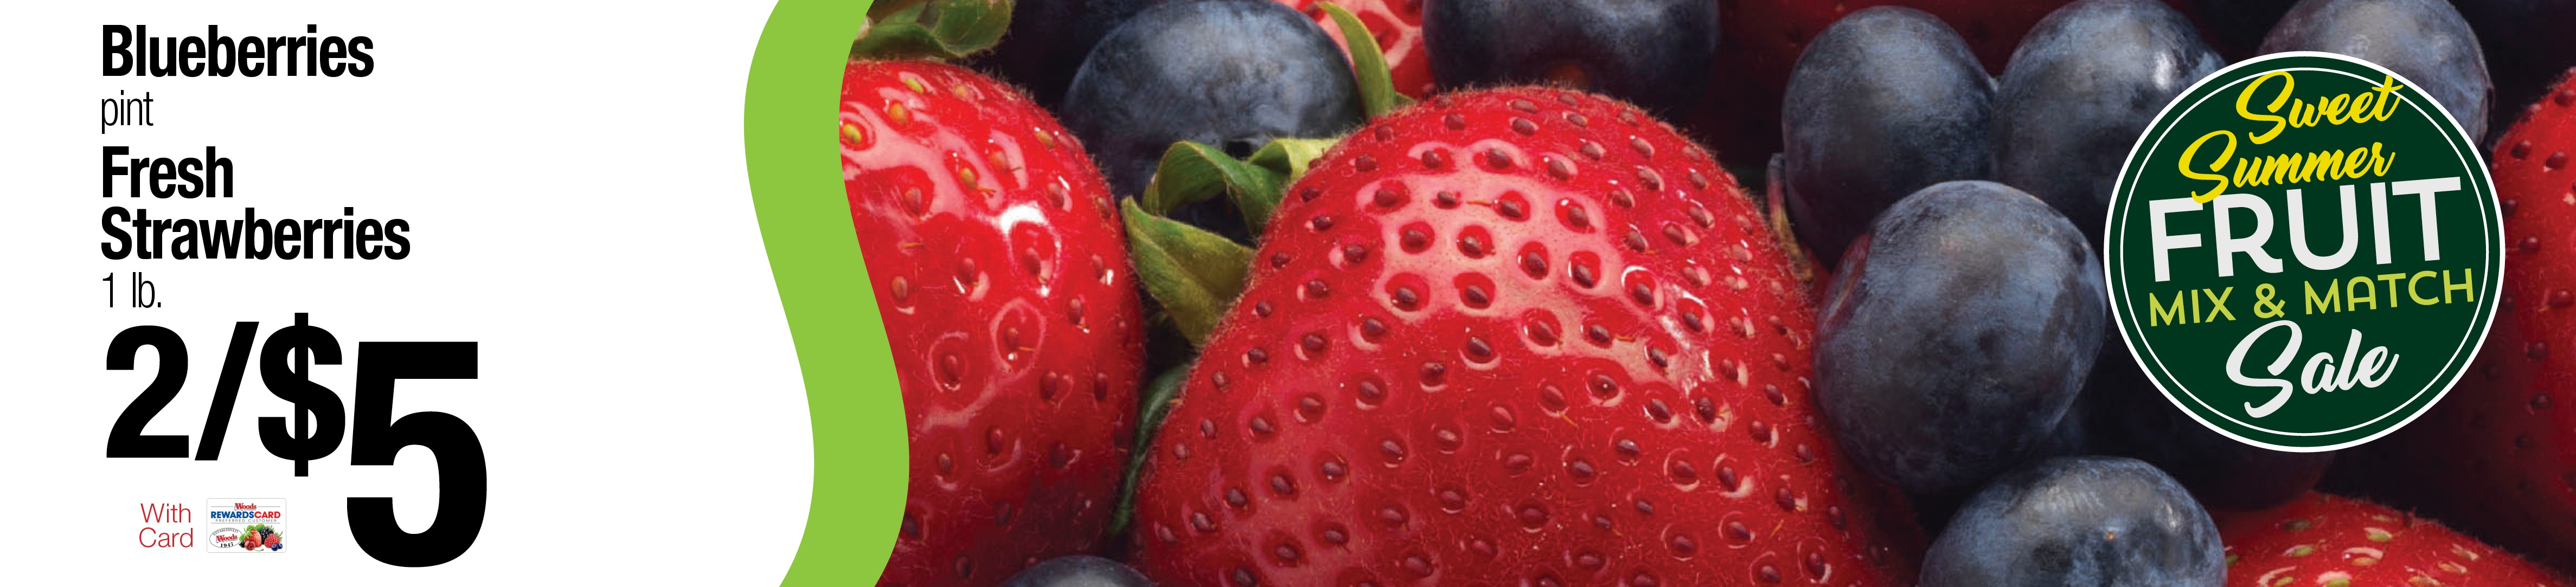 Blueberries and Strawberries Mix And Match